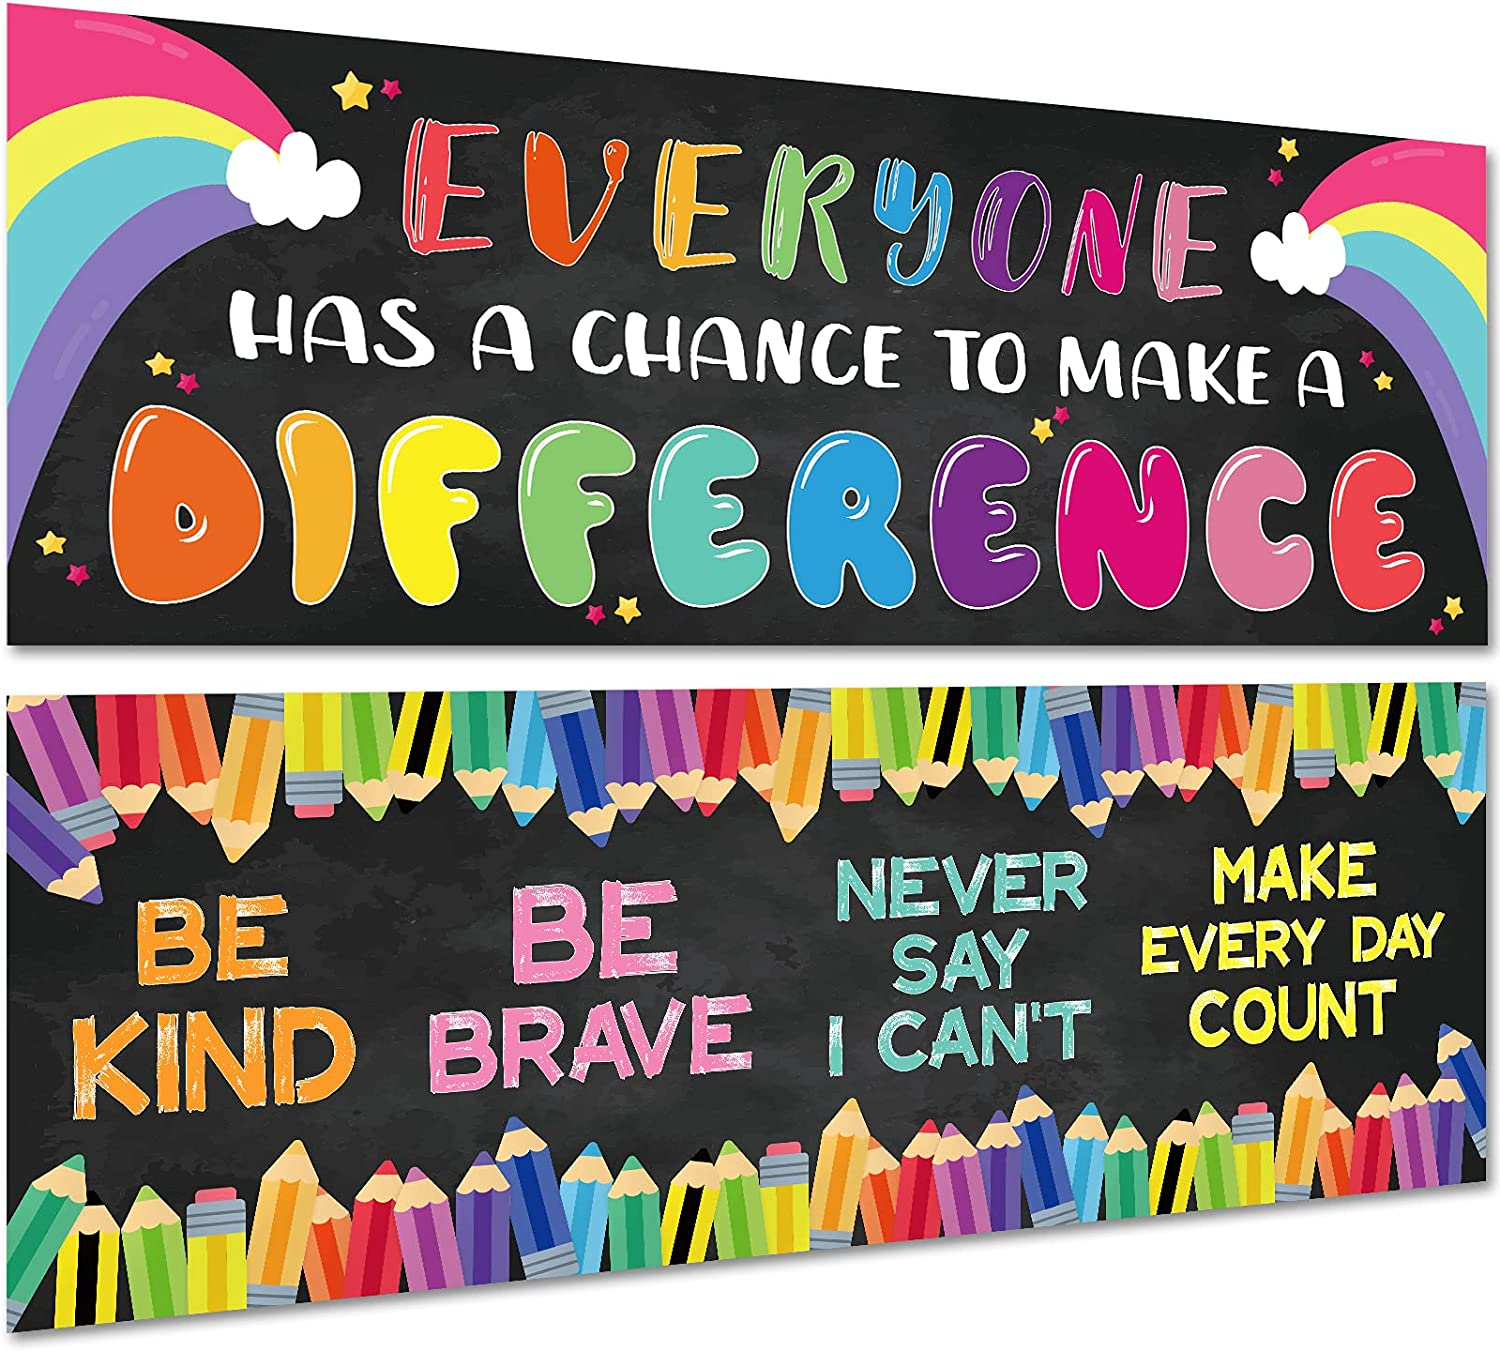 2 Pack Motivational Classroom Decorations Banner Posters for Teachers, Positive/Inspirational/Growth Mindset Banner for Students Educational, Bulletin Board/Wall Decor for Preschool/Elementary